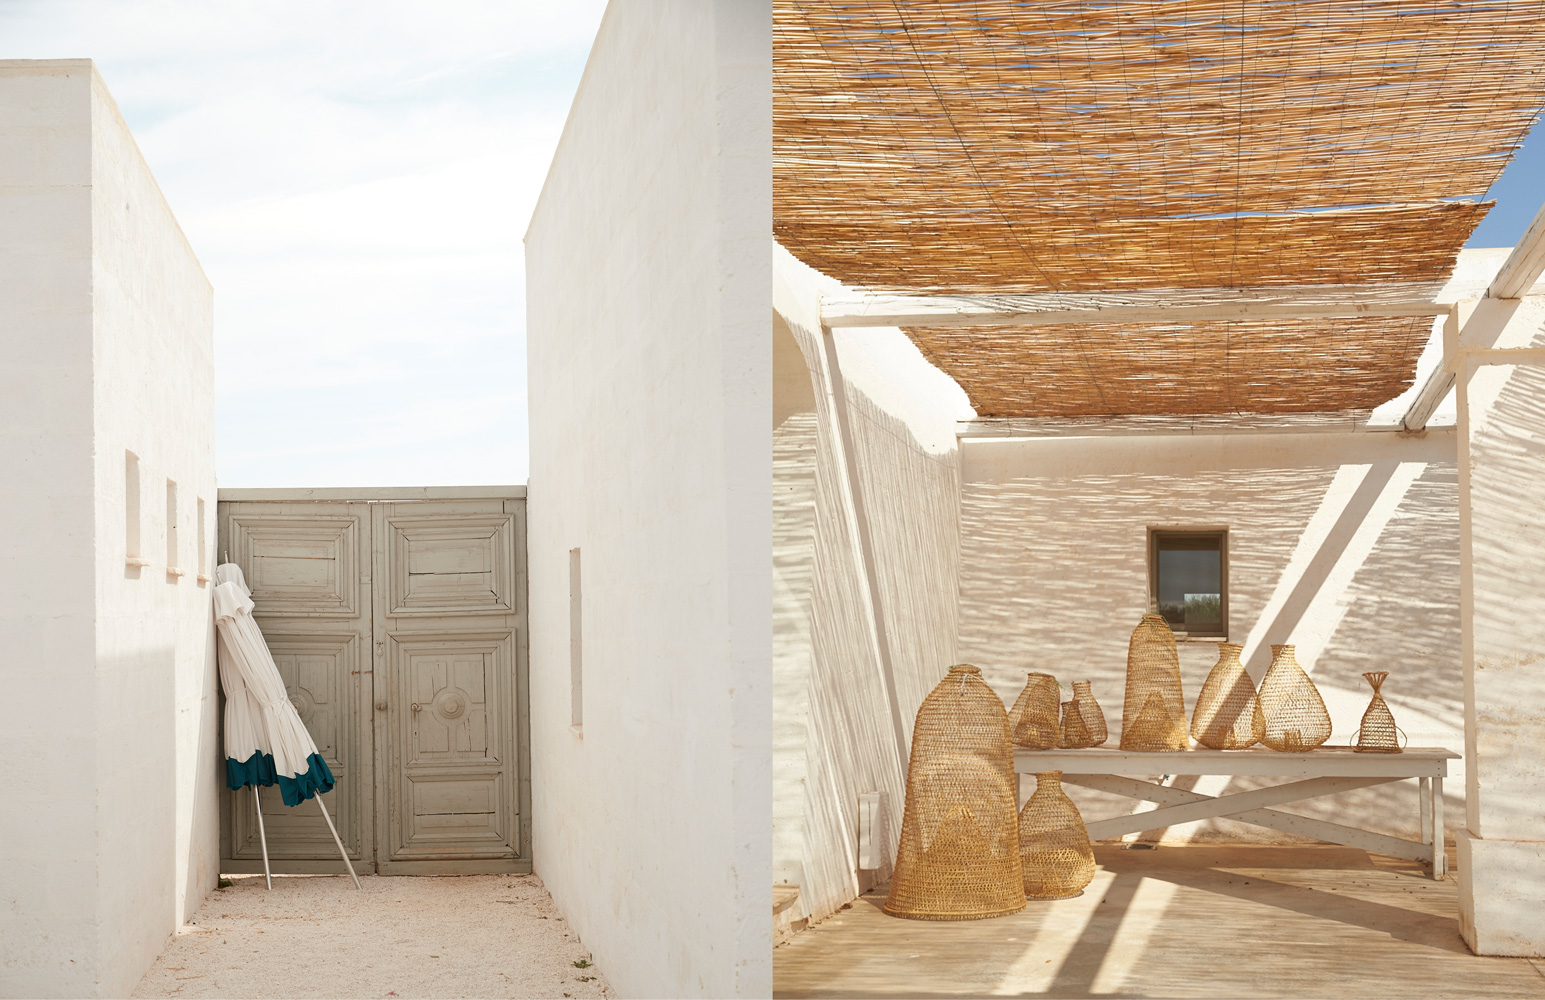 Sunbrella Italy: Doors and Baskets